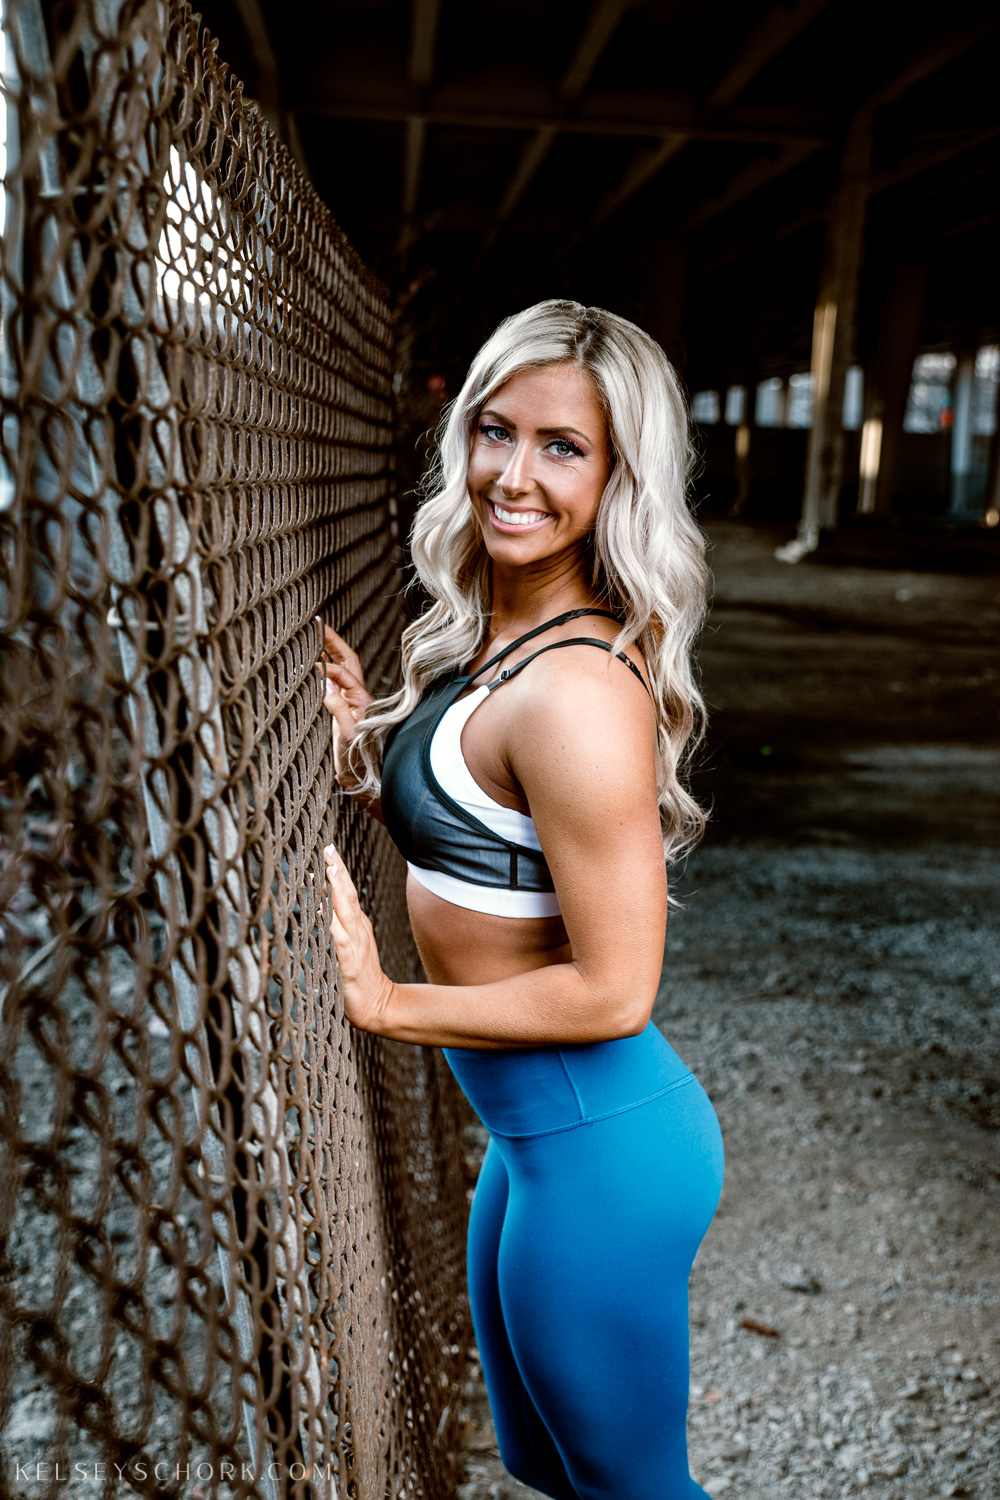 Erin_fitness_photoshoot-13.jpg